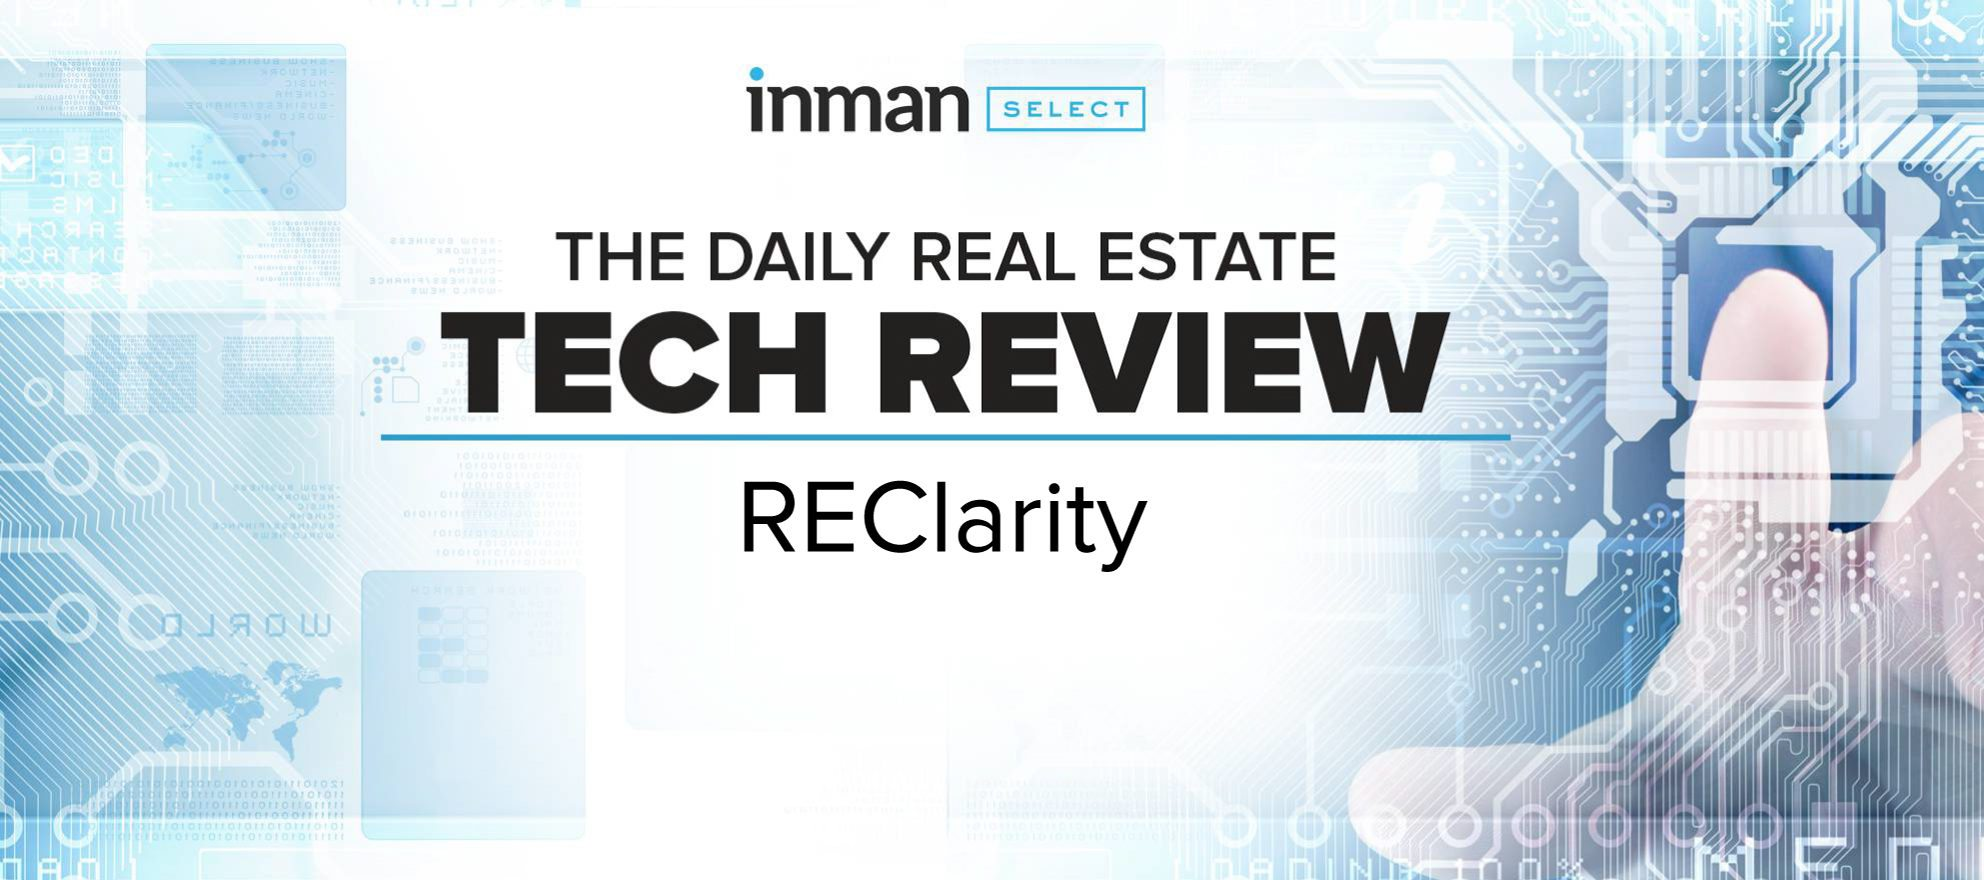 REclarity a fast, easy way to enrich marketing media